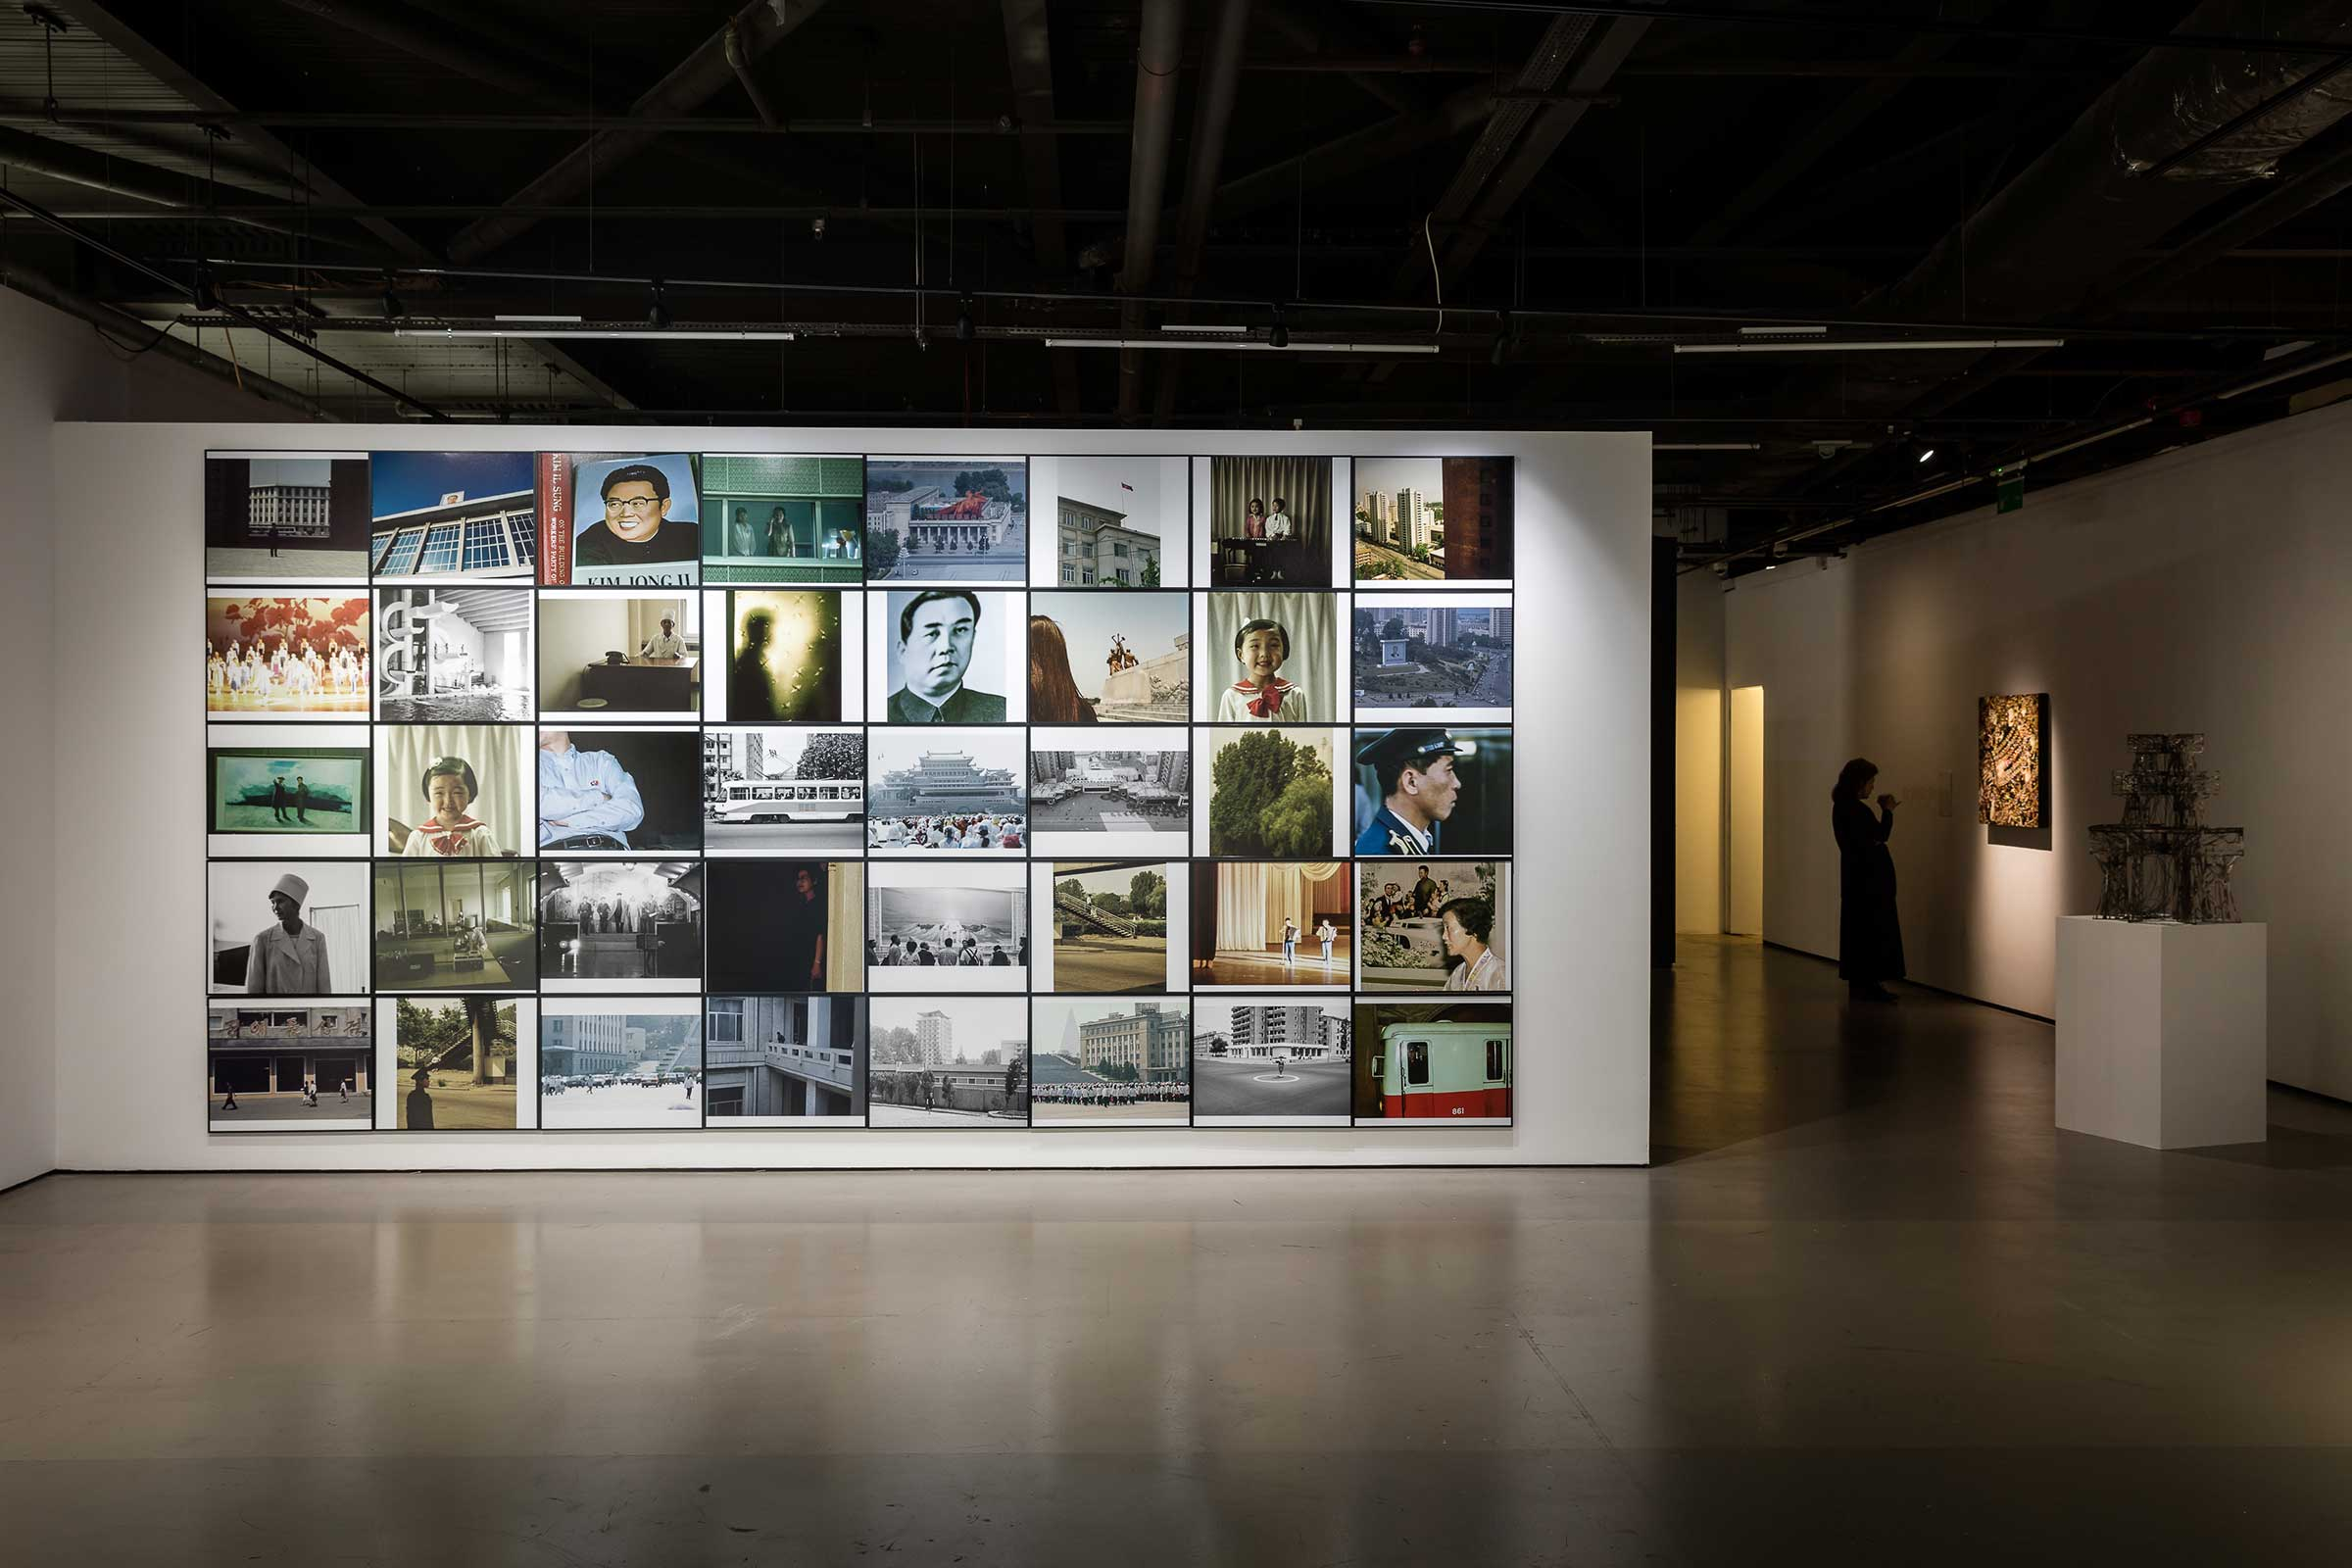 Installation view of Seung Woo Back's Blow Up series in Negotiating Borders (2019) at the Korean Cultural Centre UK. Image by Dan Weil. Courtesy of the artists and the Korean Cultural Centre UK